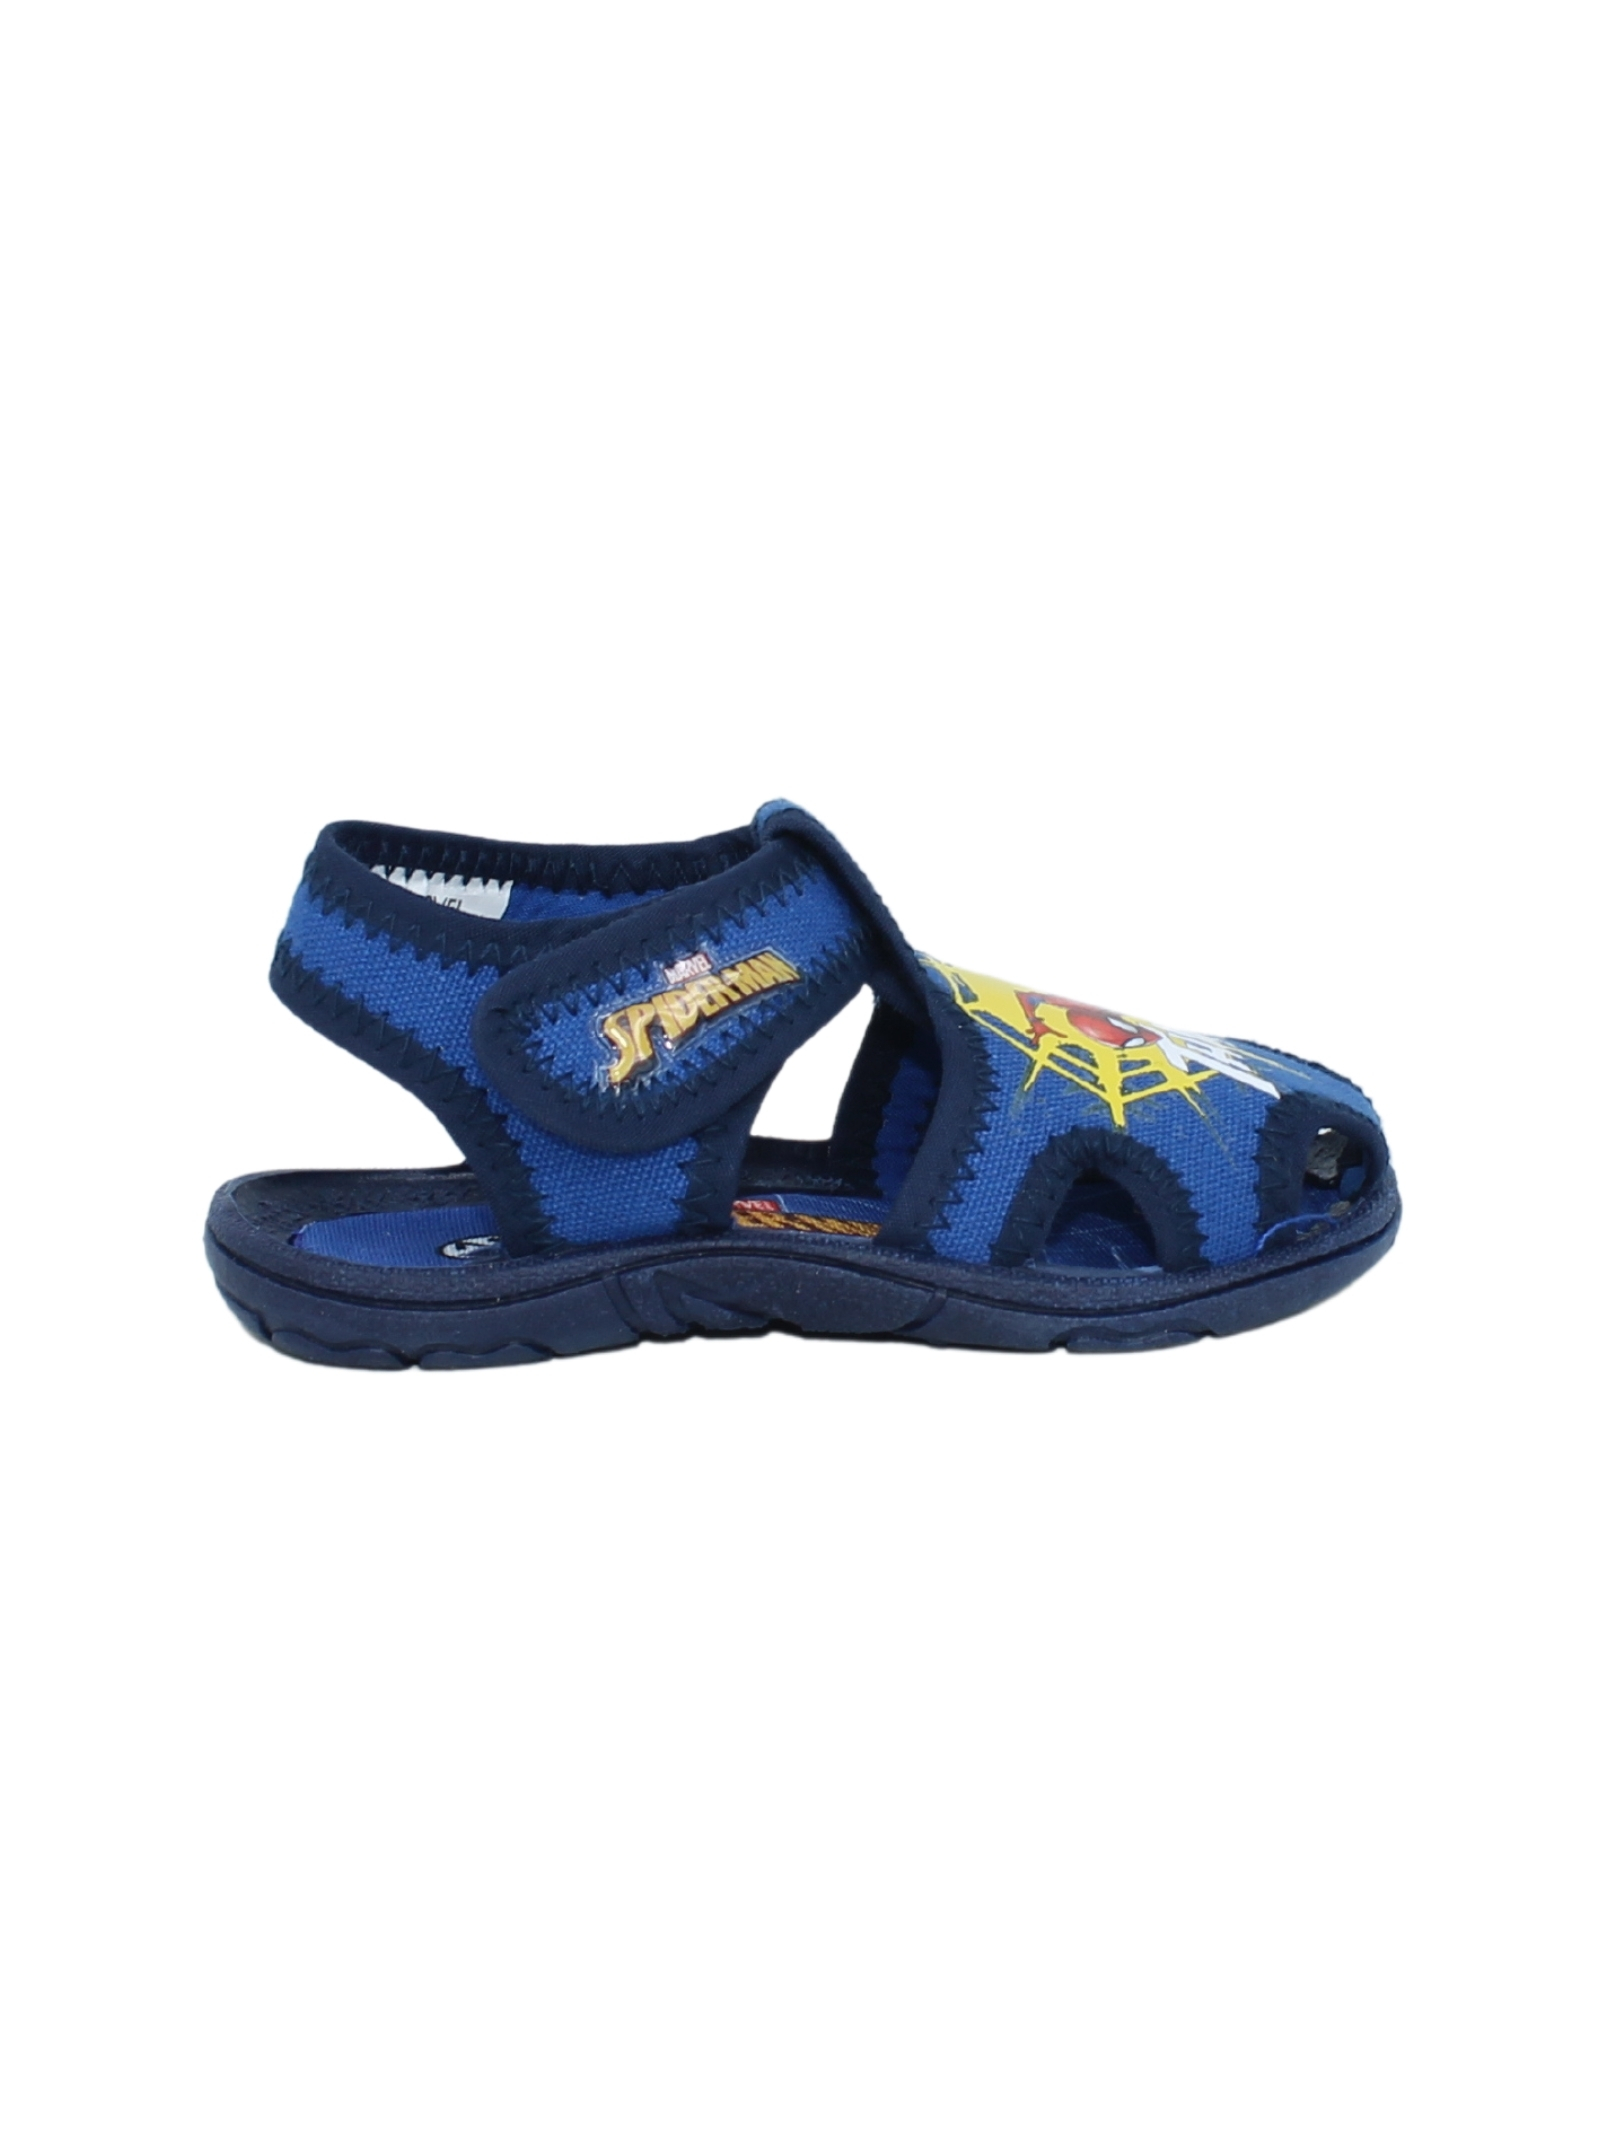 EASY SHOES | Sandals | SPP4340BLU